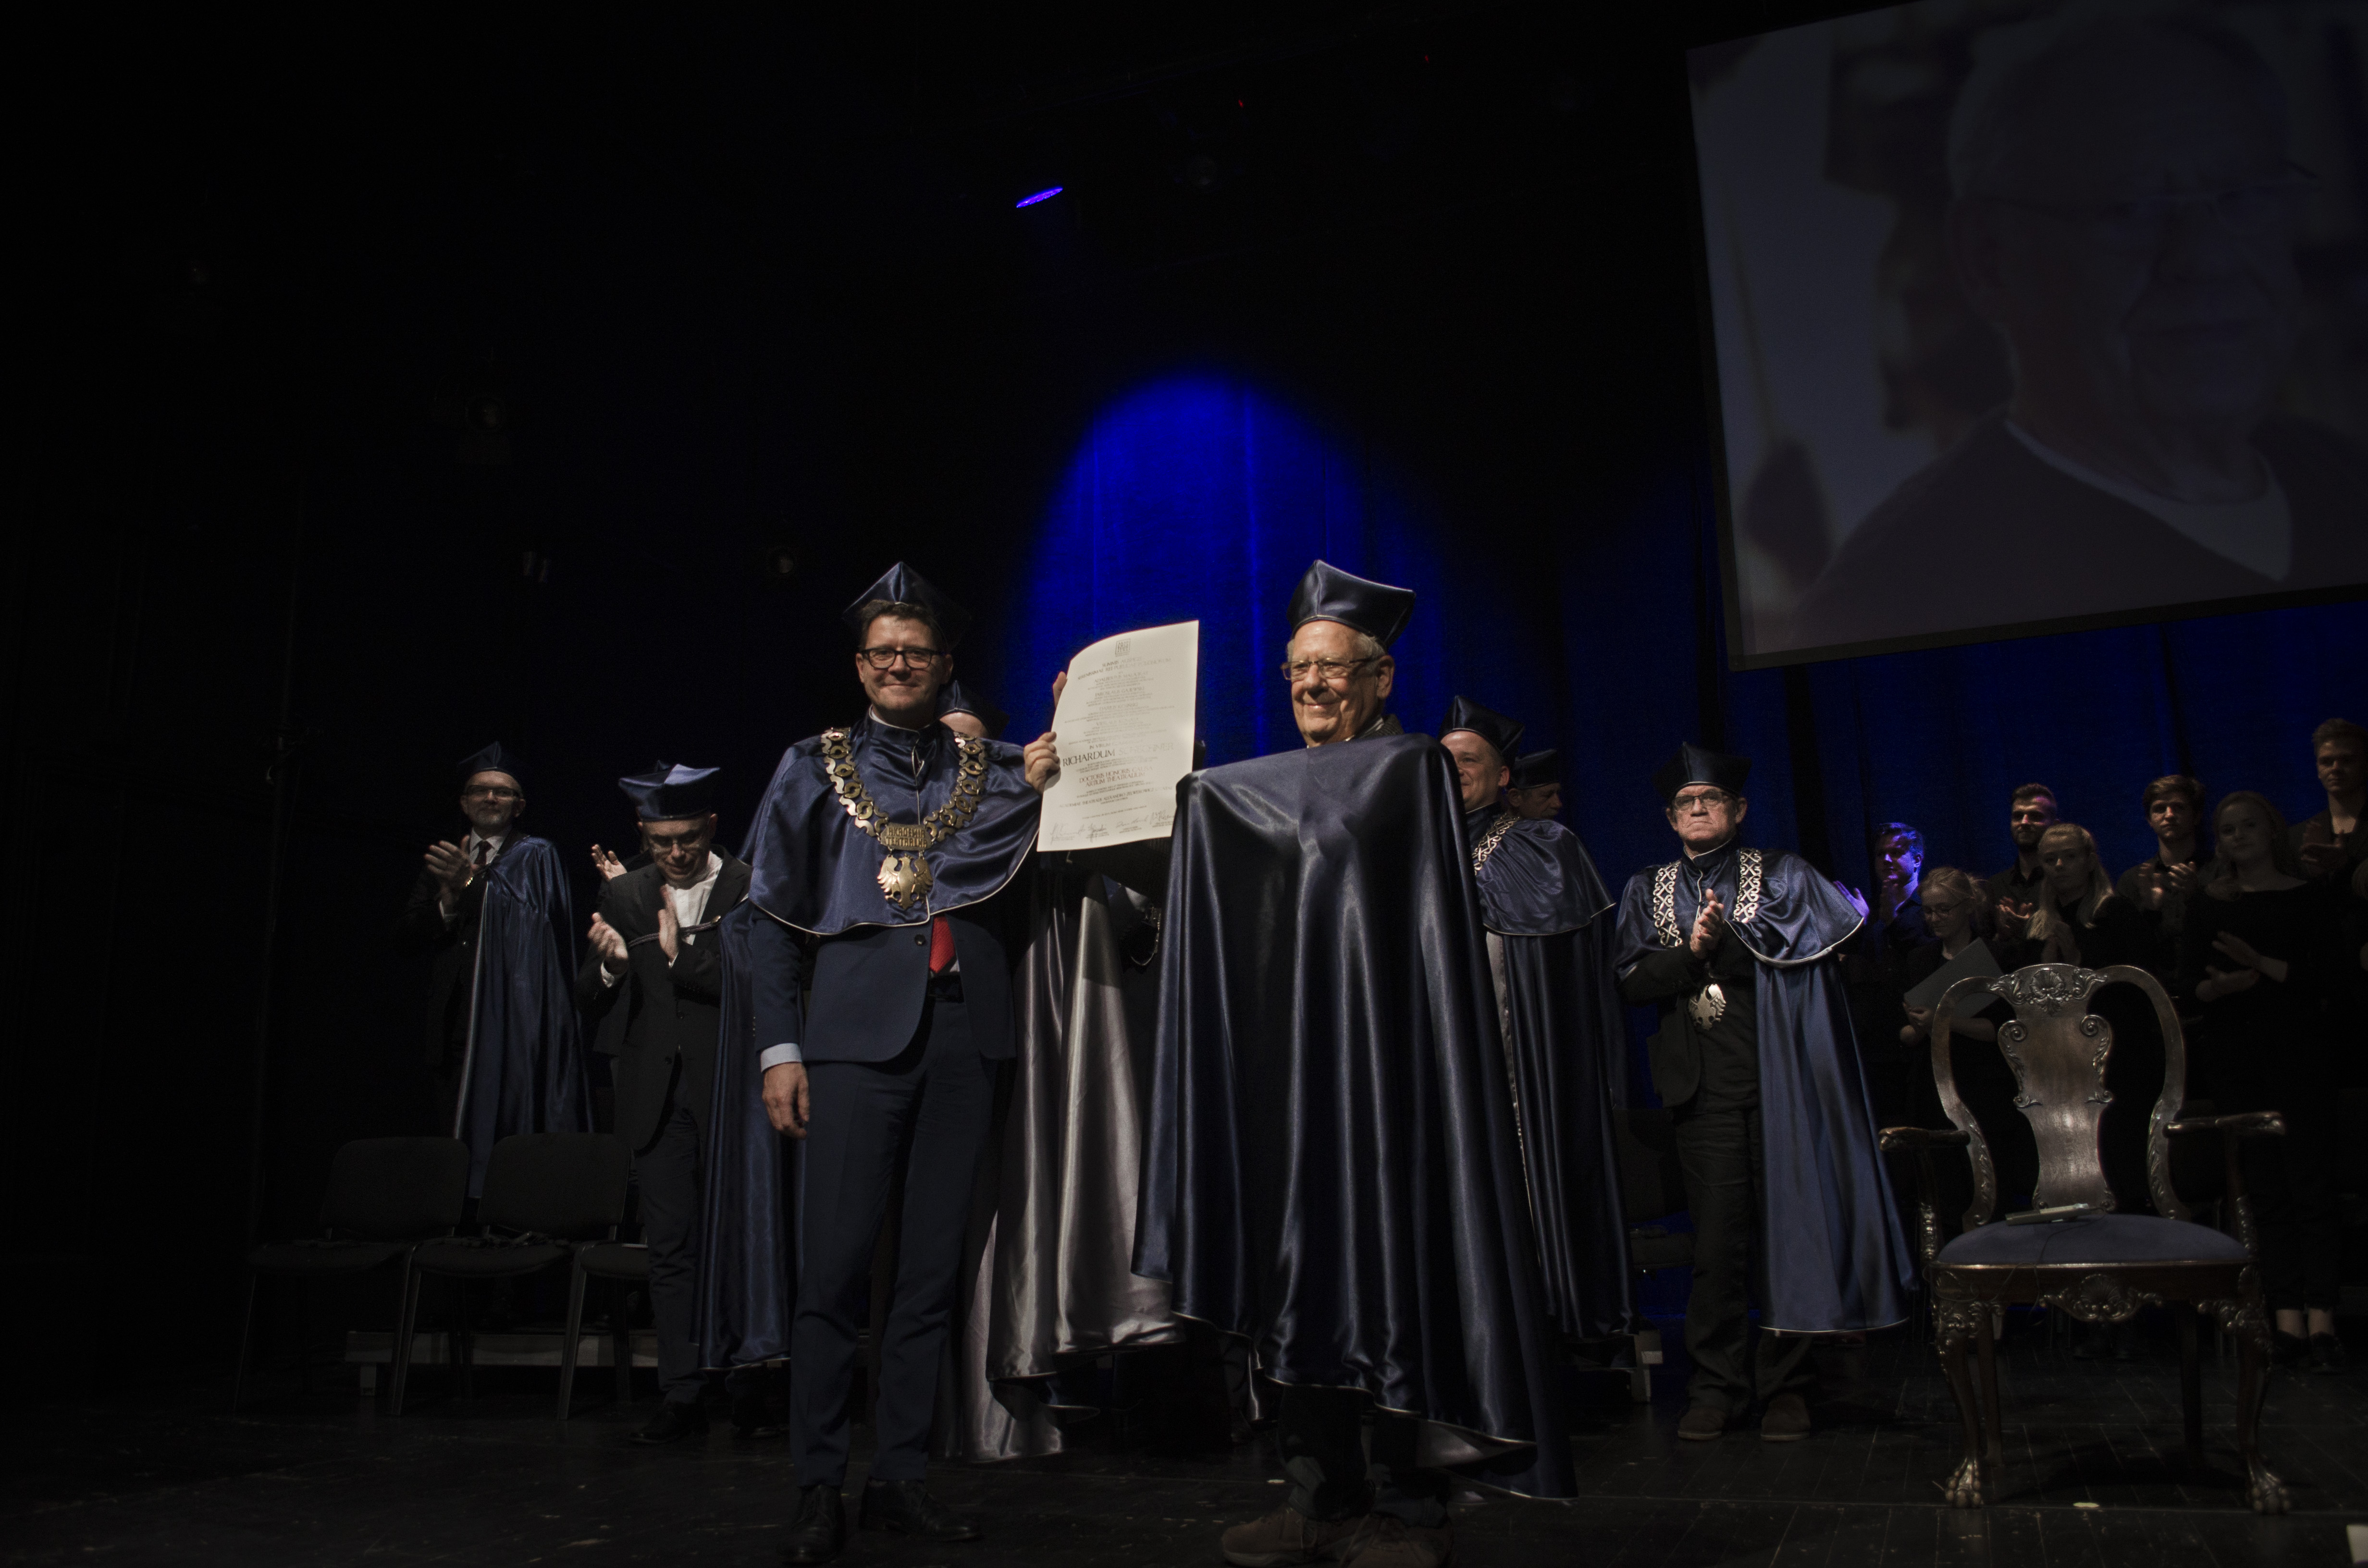 Richard Schechner receives a honorary degree from the Aleksander Zelwerowicz Theatre Academy in Warsaw, 16.10.2017. Photo: Vova Makovskyi.